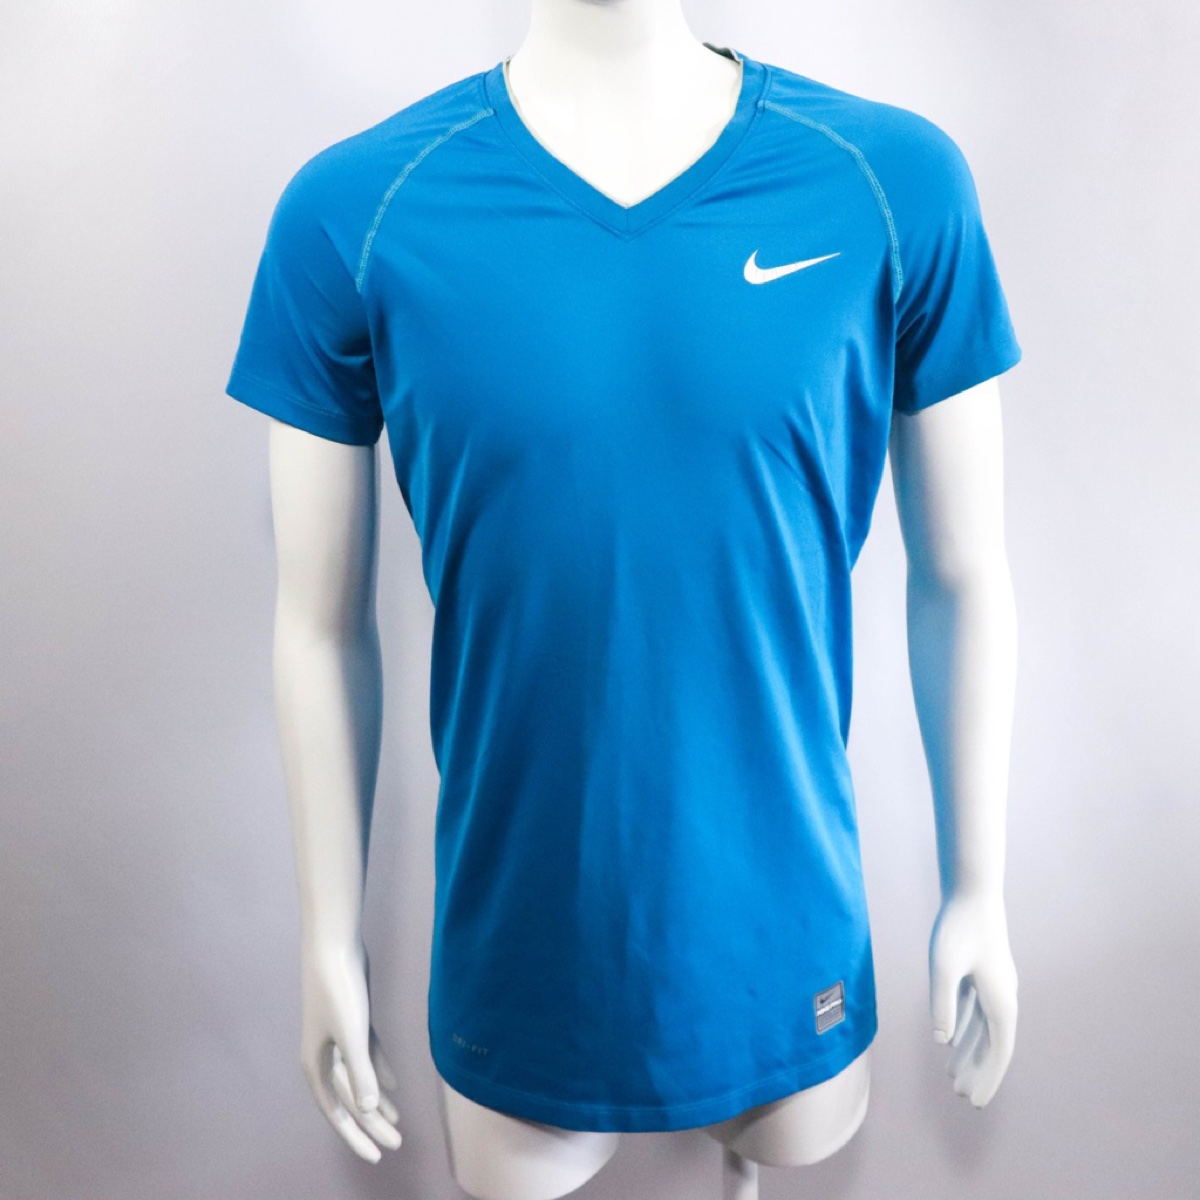 Blue Nike Pro Athletic Running T-Shirt - Size Small